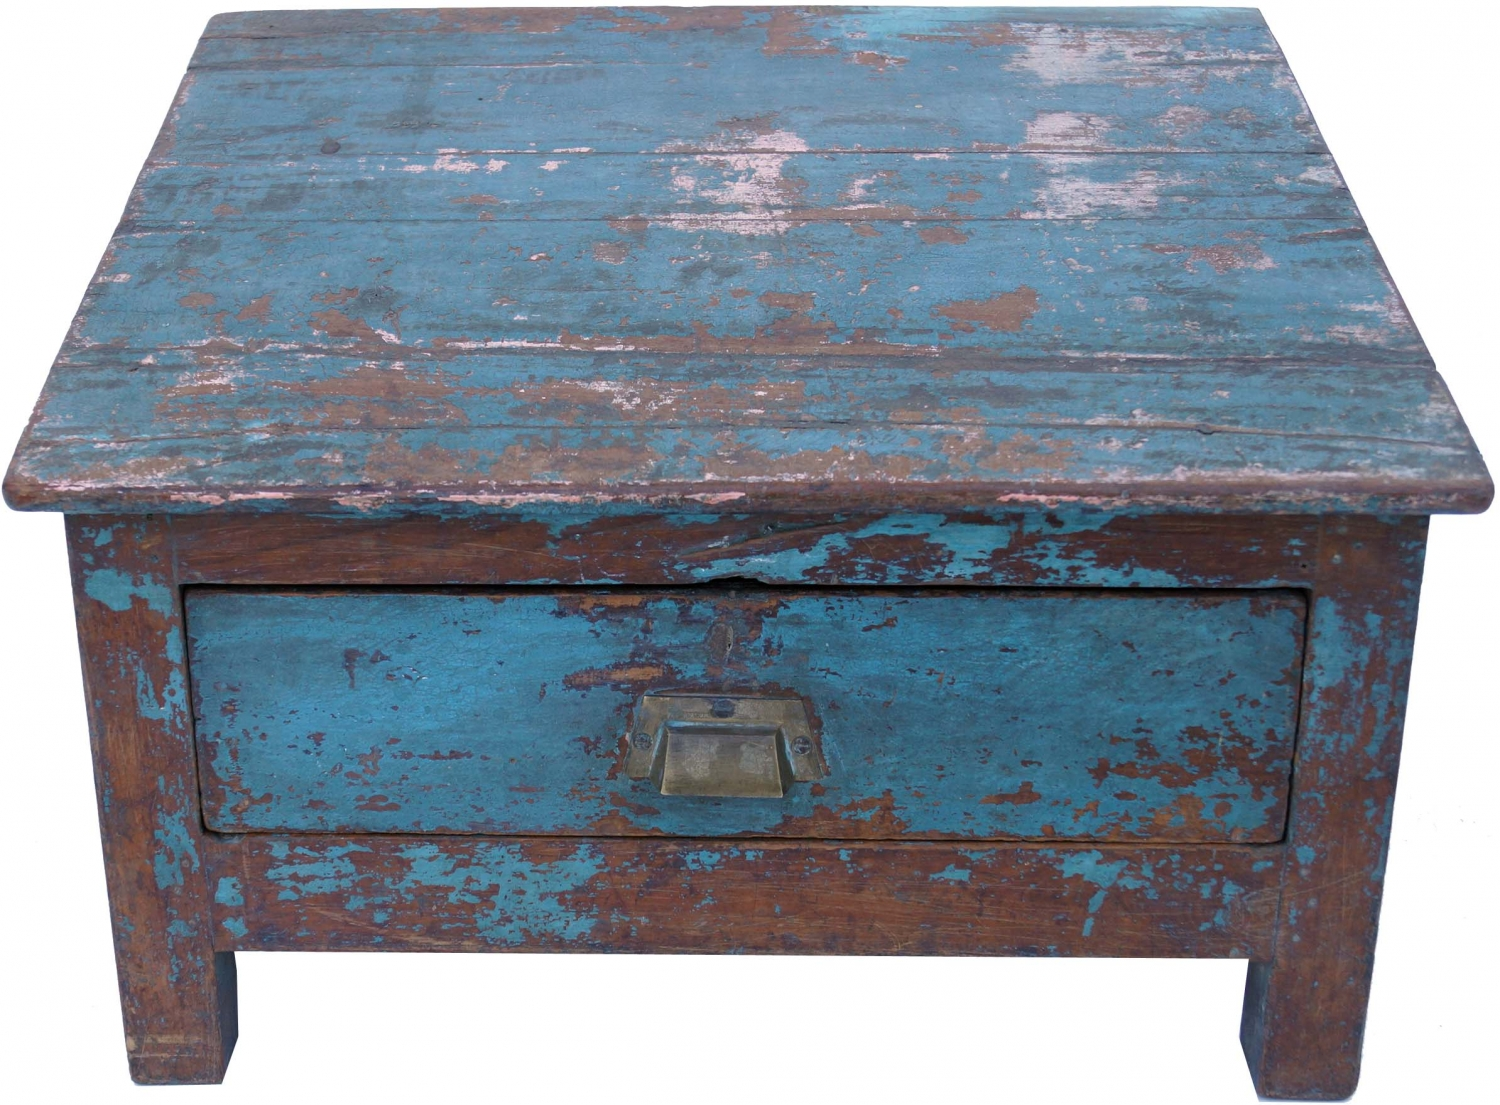 Möbel Im Shabby Look Floor Writing Desk Chest In Shabby Chic Look With 1 Drawer Model 12 37x52x41 Cm